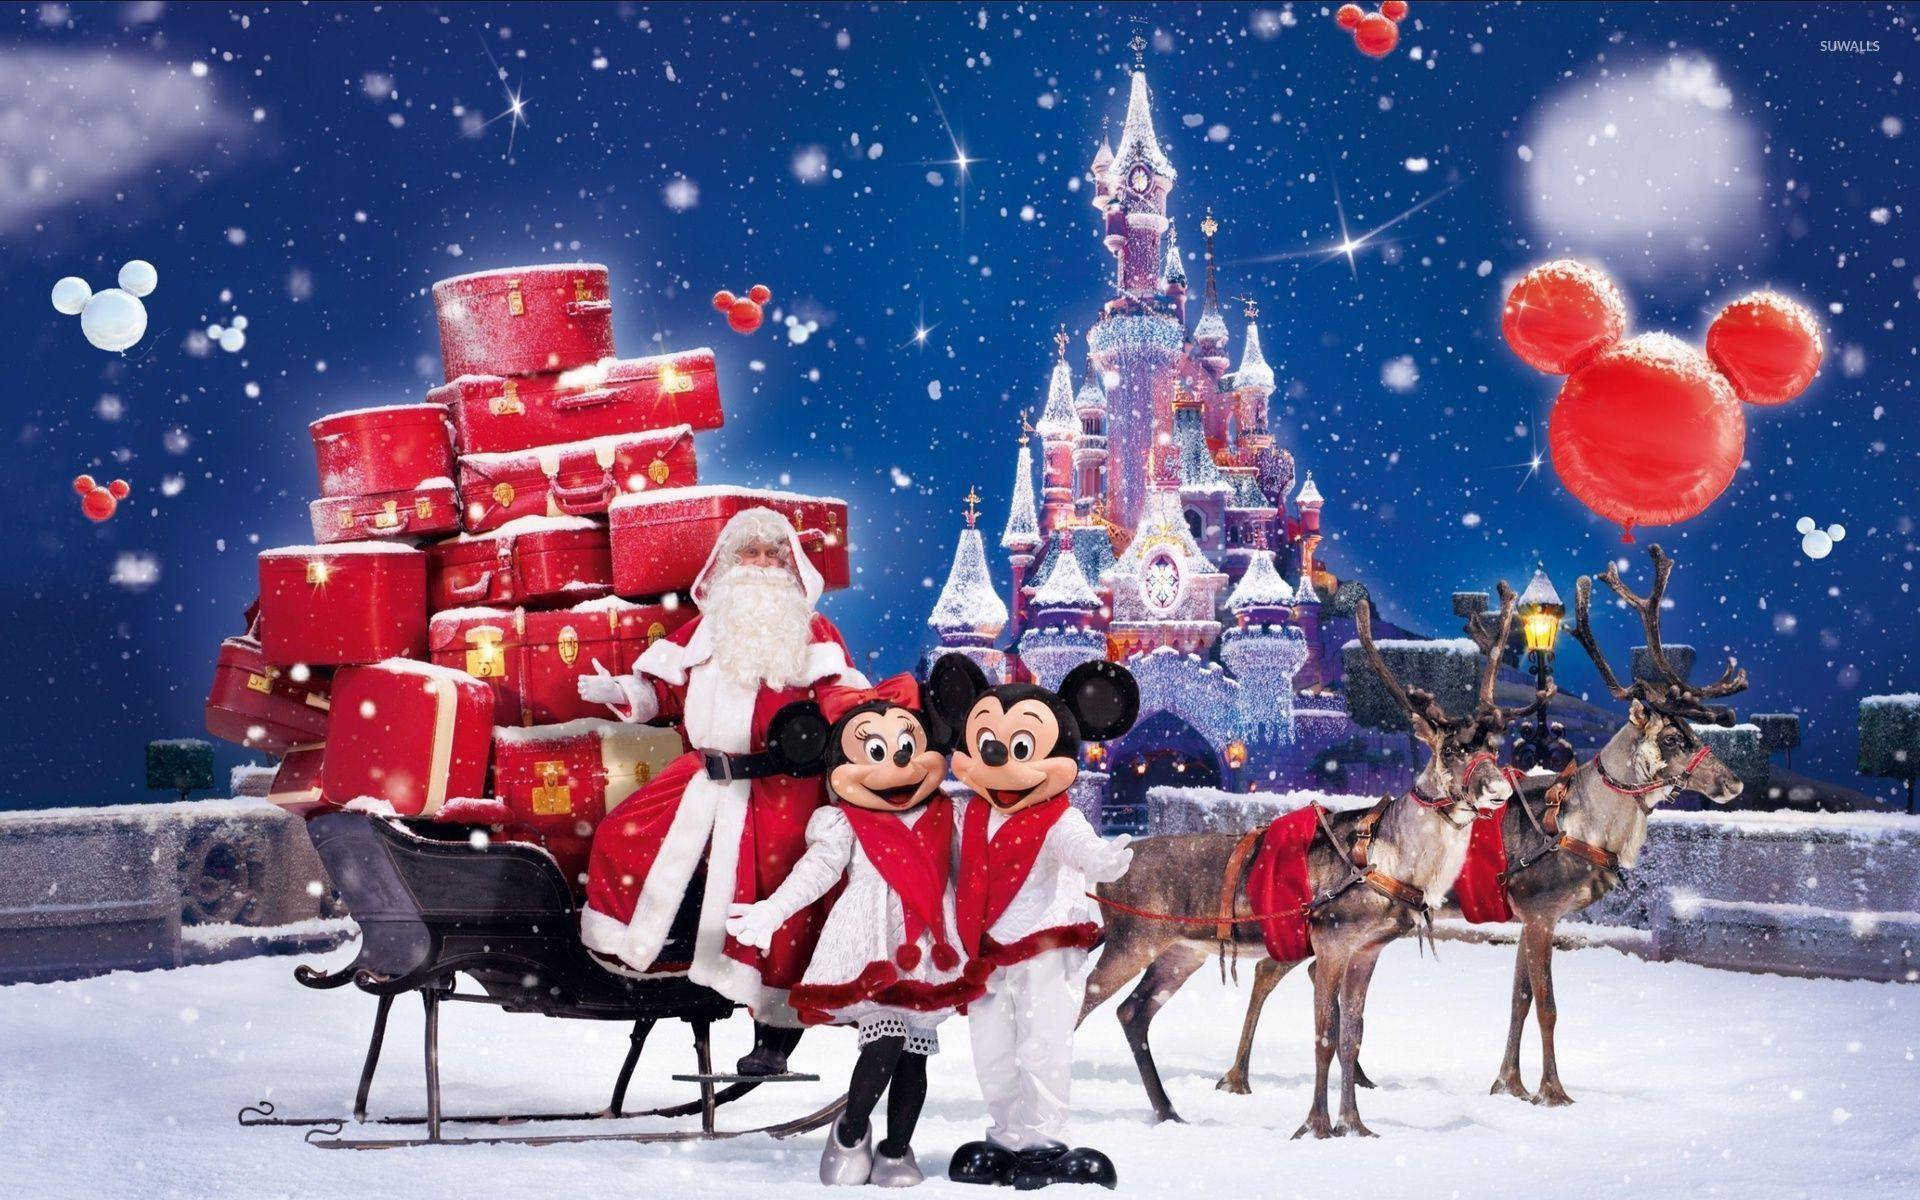 Santa Claus bringing gifts in a Disneyland park wallpapers